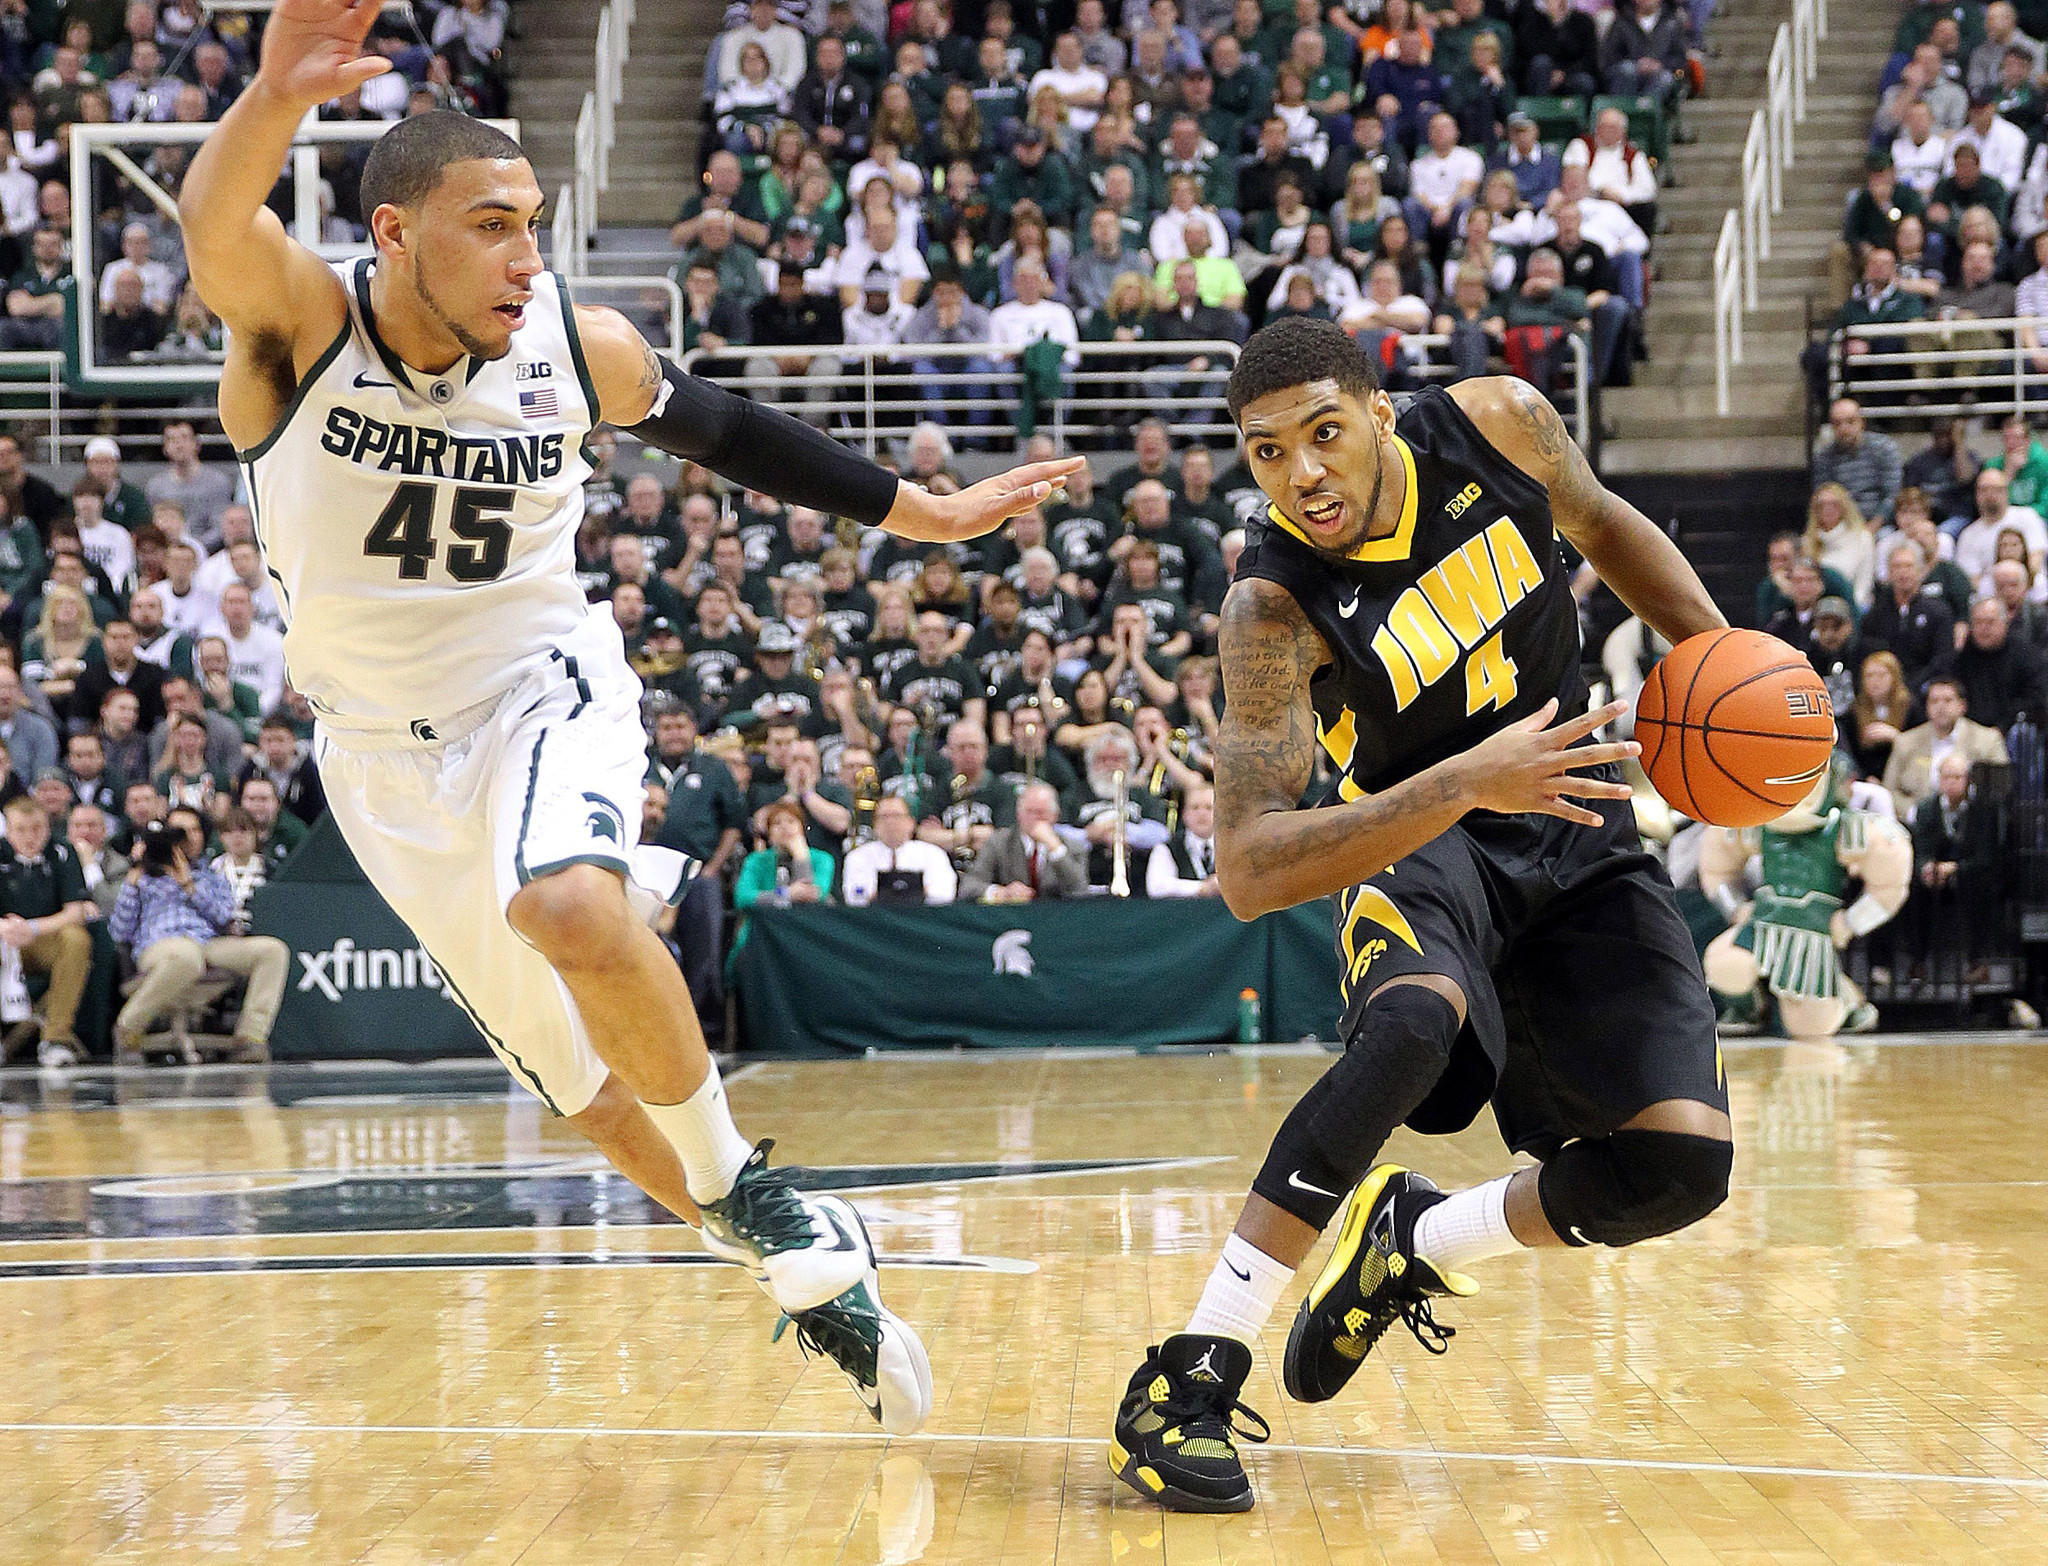 Iowa's Roy Devyn Marble drives to the basket against Michigan State's Denzel Valentine.